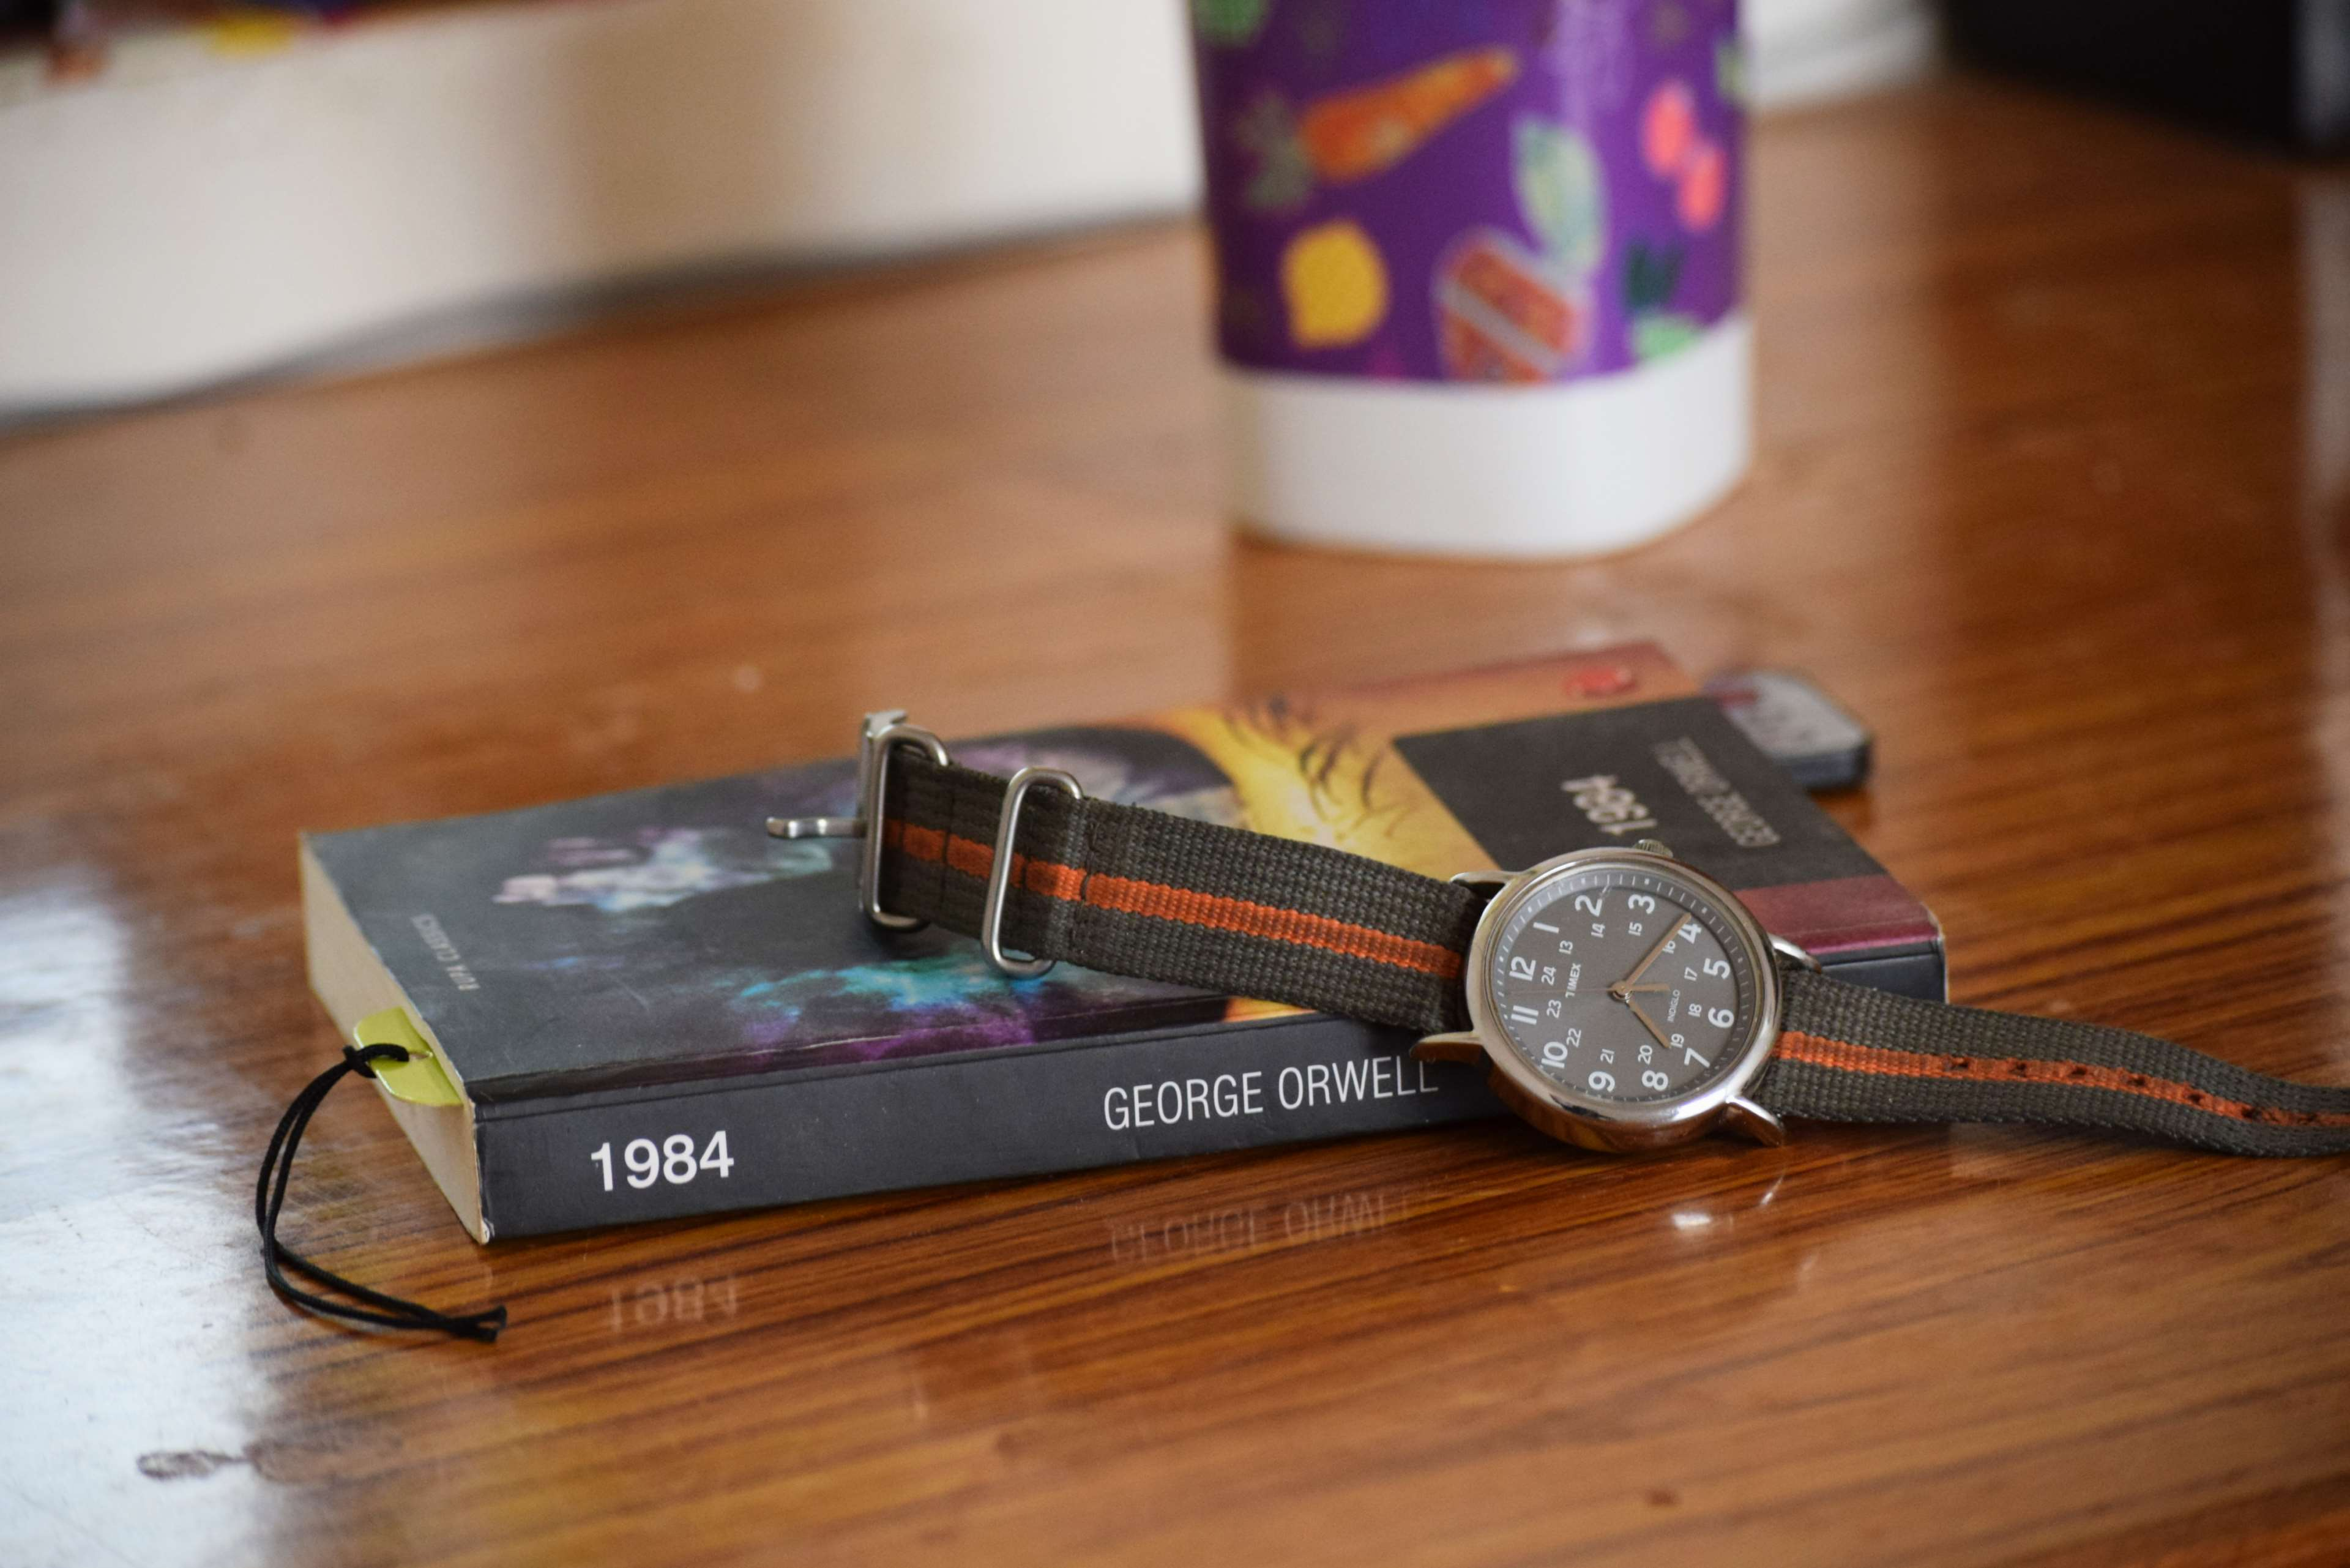 Analog Watch Book Tea Cup 4k Wallpaper And Background Everyday Carry 587915 Hd Wallpaper Backgrounds Download